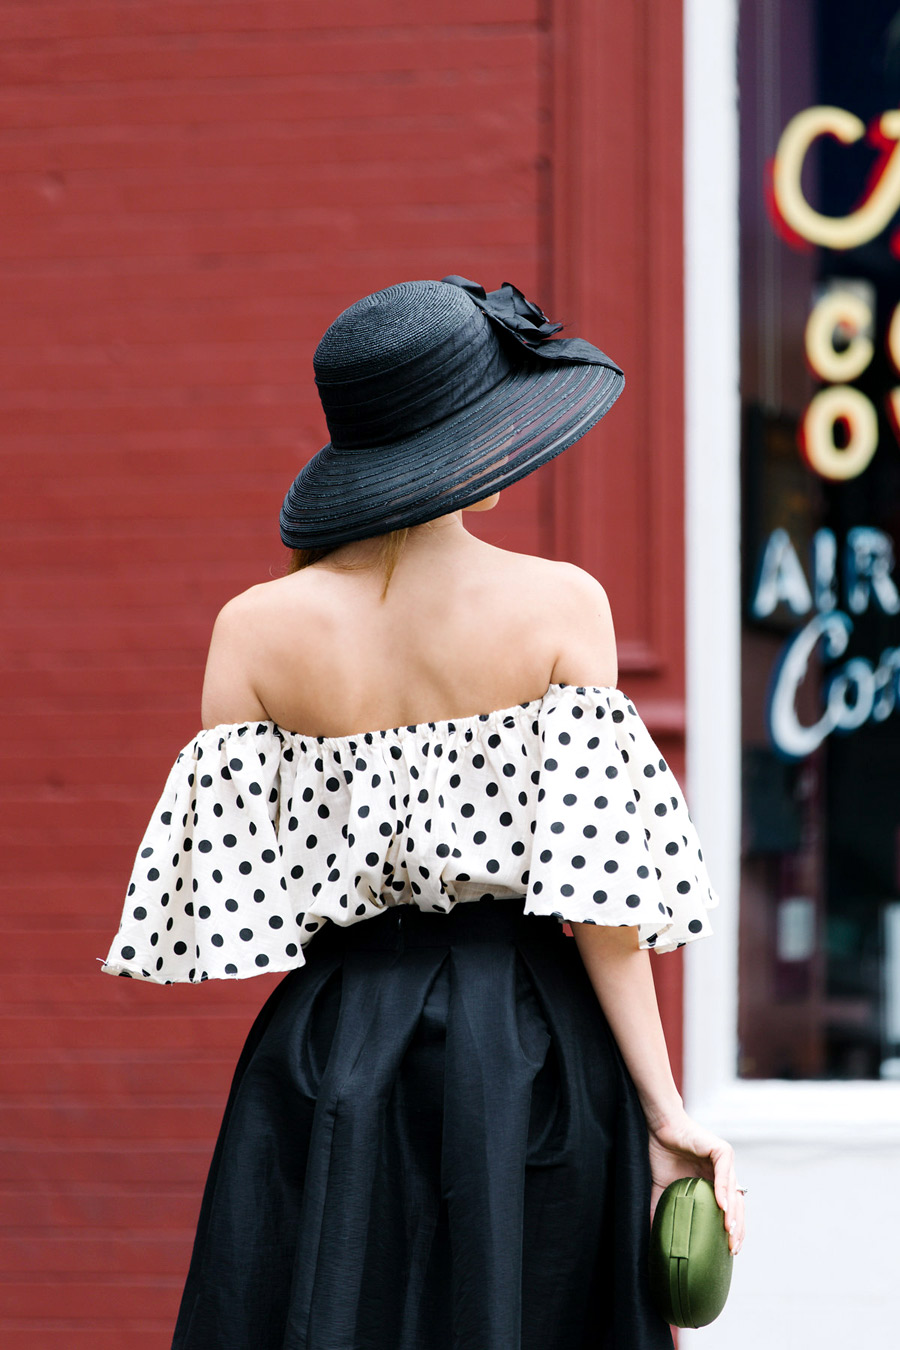 Big black classy hat worn by Ulia Ali from pastiche.today blog.